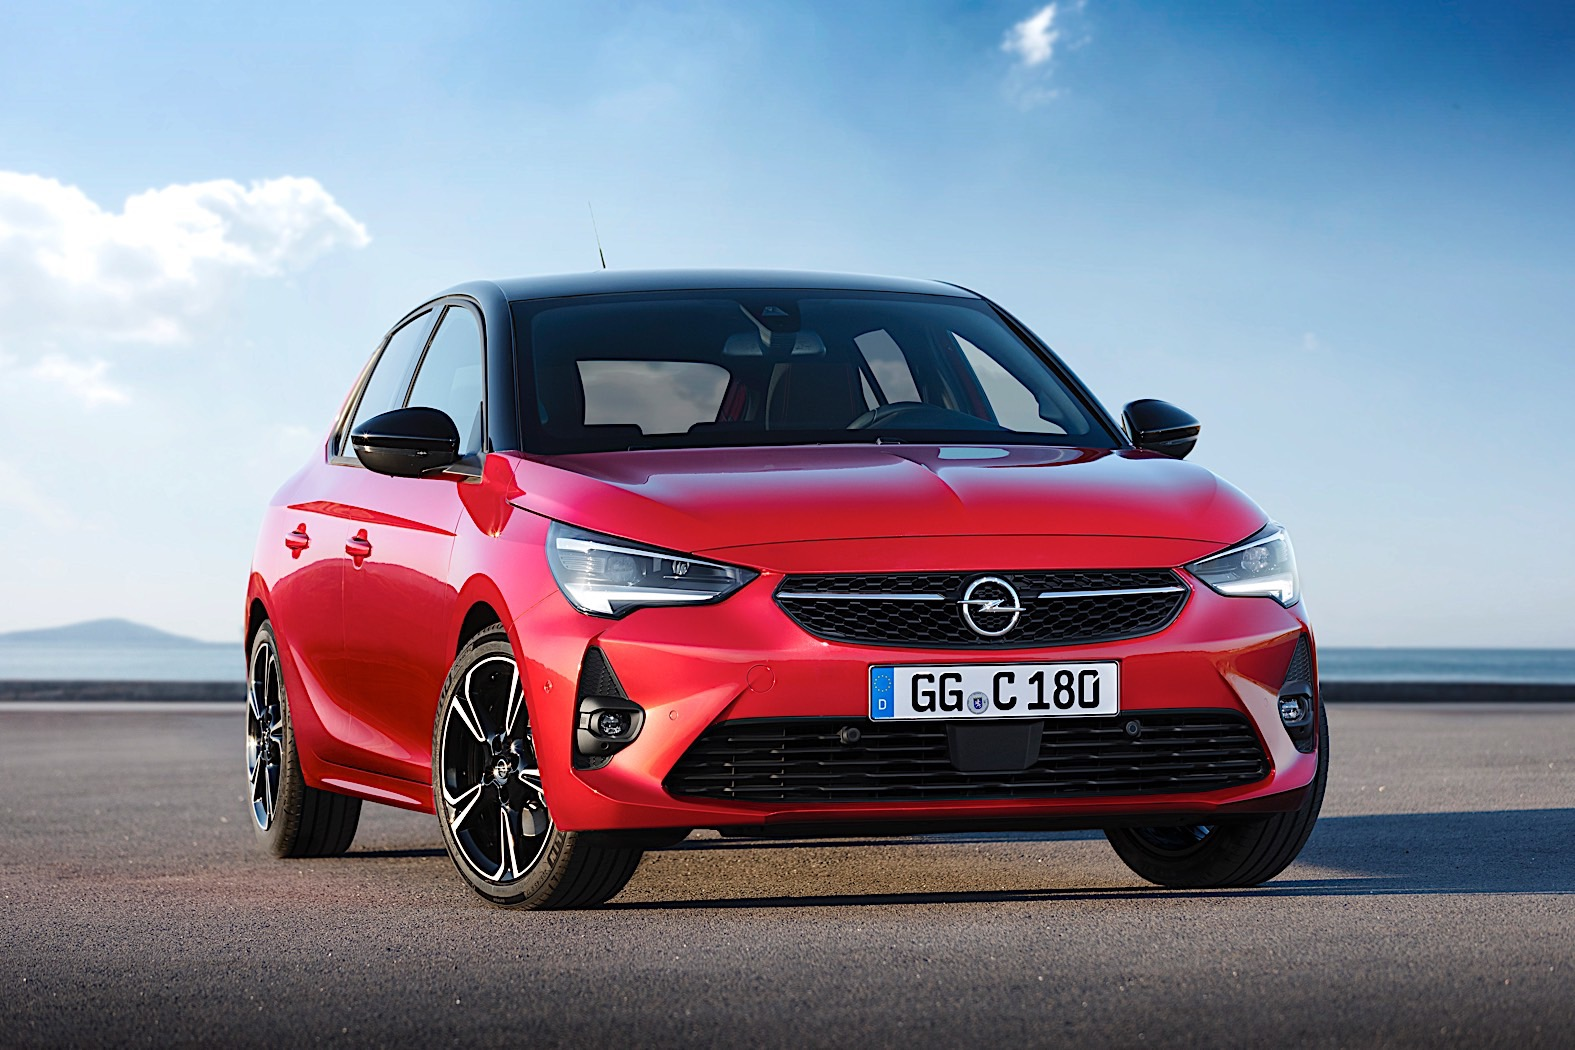 2020 Opel Astra Sedan, Release Date, Price, And Design >> 2020 Opel Corsa With Ice Engines Set For Sales Start Keeps